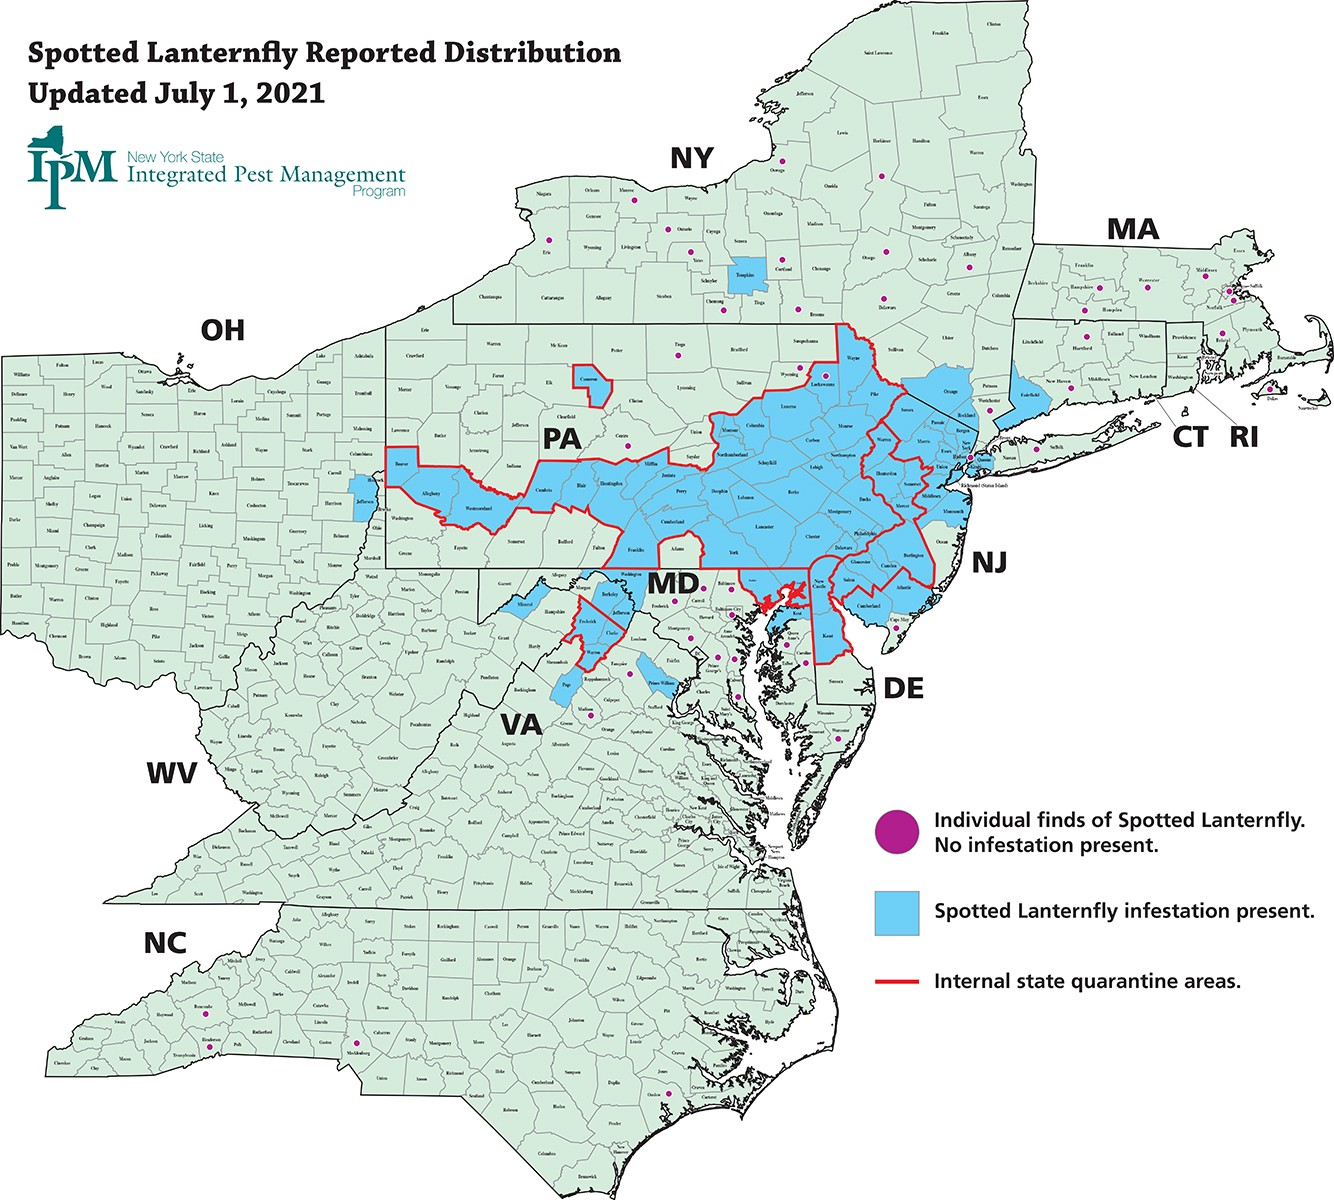 a map showing many eastern, mid-Atlantic states. A large patch of blue indicates the presence of spotted lanternfly throughout eastern Pennsylvania, Maryland, Delaware, and New Jersey and reaching into western Pennsylvania, New York, Connecticut and Virginia